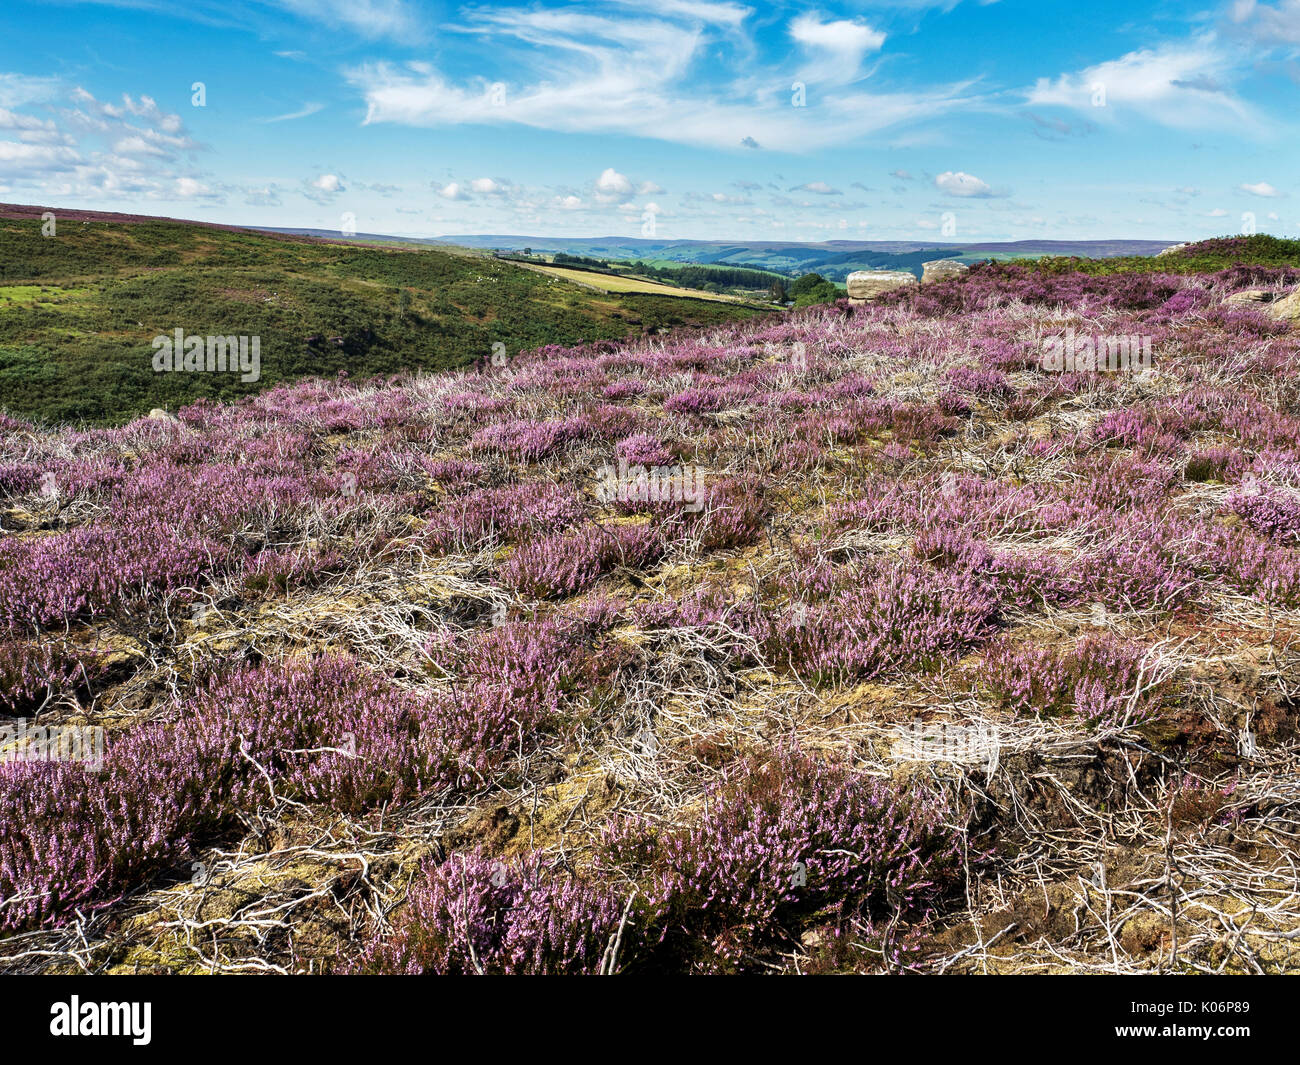 Heather Growing Back on Managed Grouse Moorland near Pateley Bridge Nidderdale AONB Yorkshire England - Stock Image